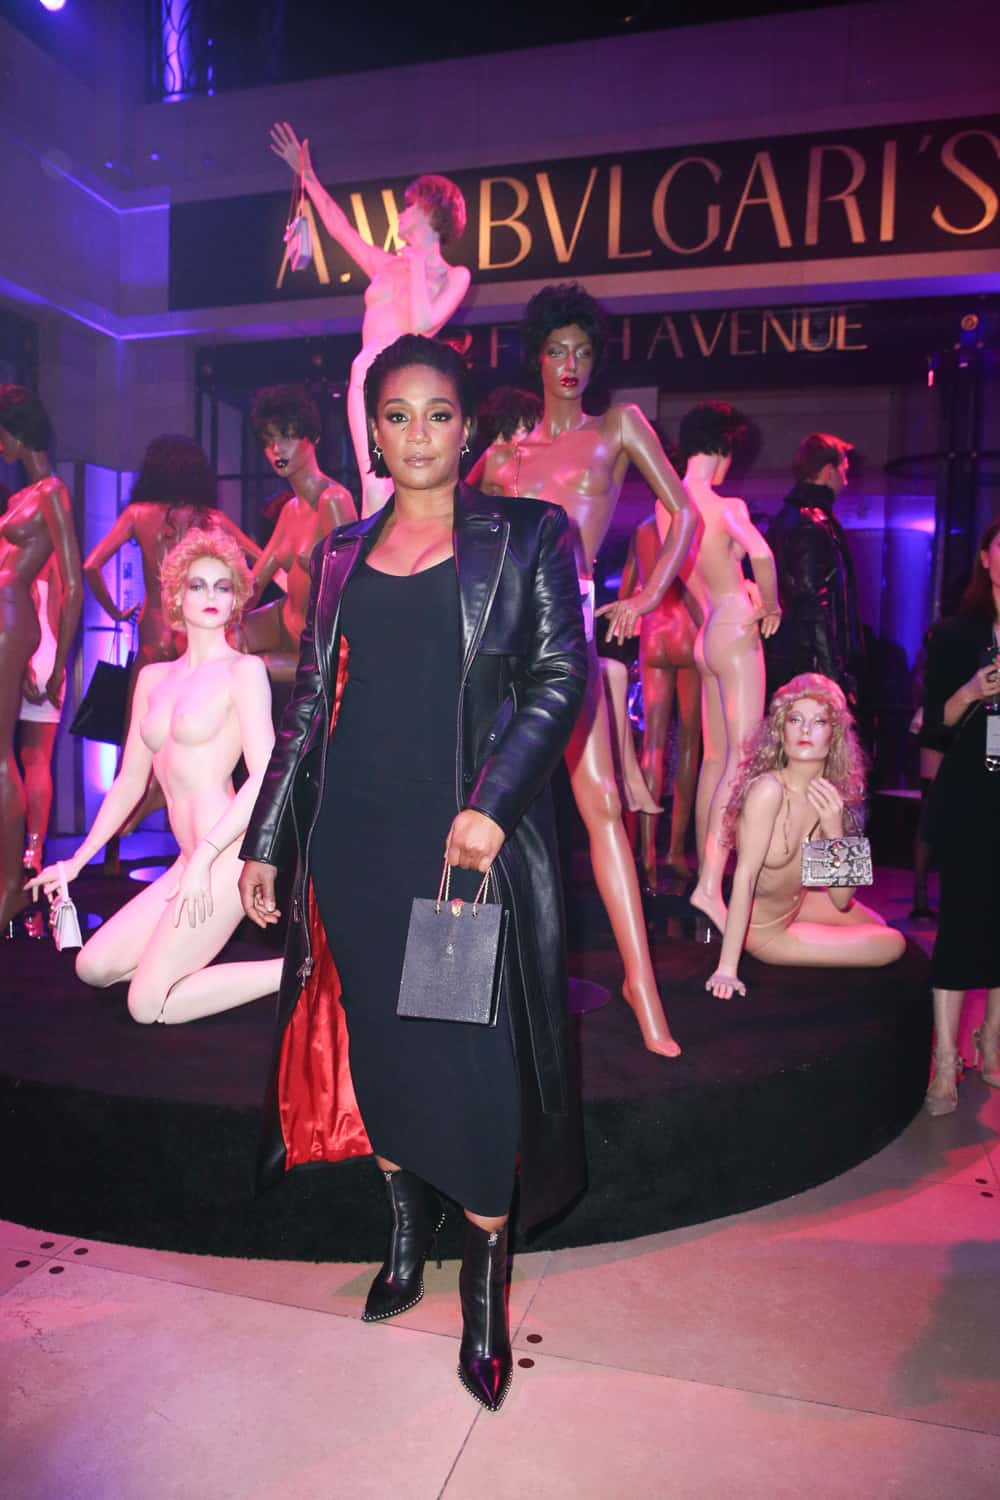 Alexander Wang and Bvlgari Celebrate: A.W. BVLGARI'S 712 Fifth Avenue